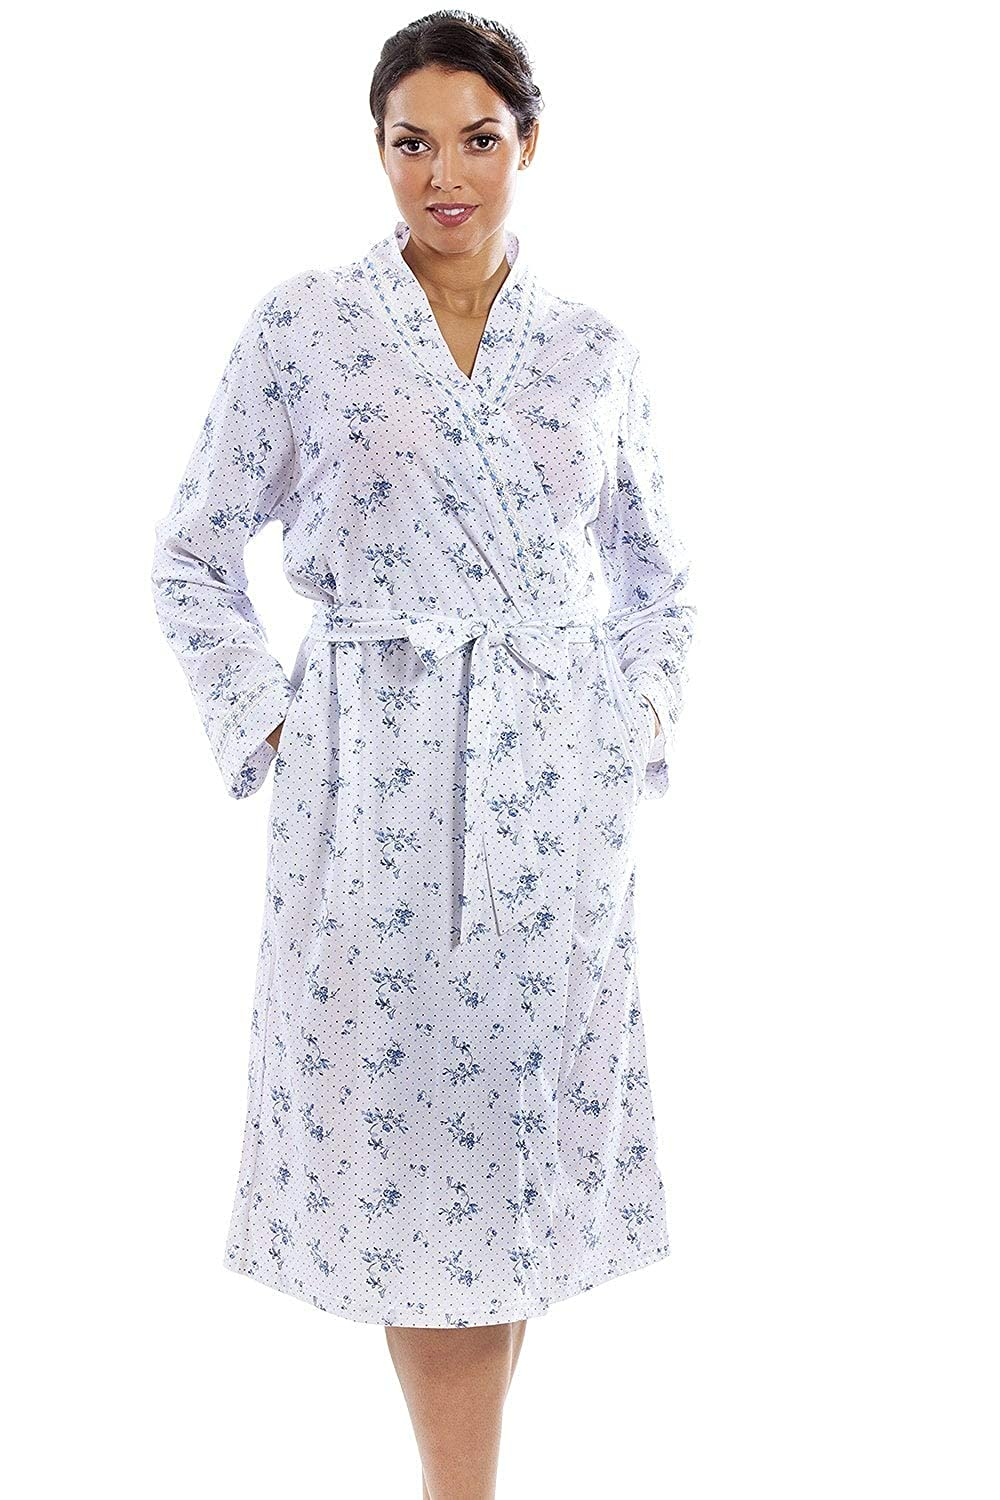 Camille Womens Porcelain Floral Wrapover Robe